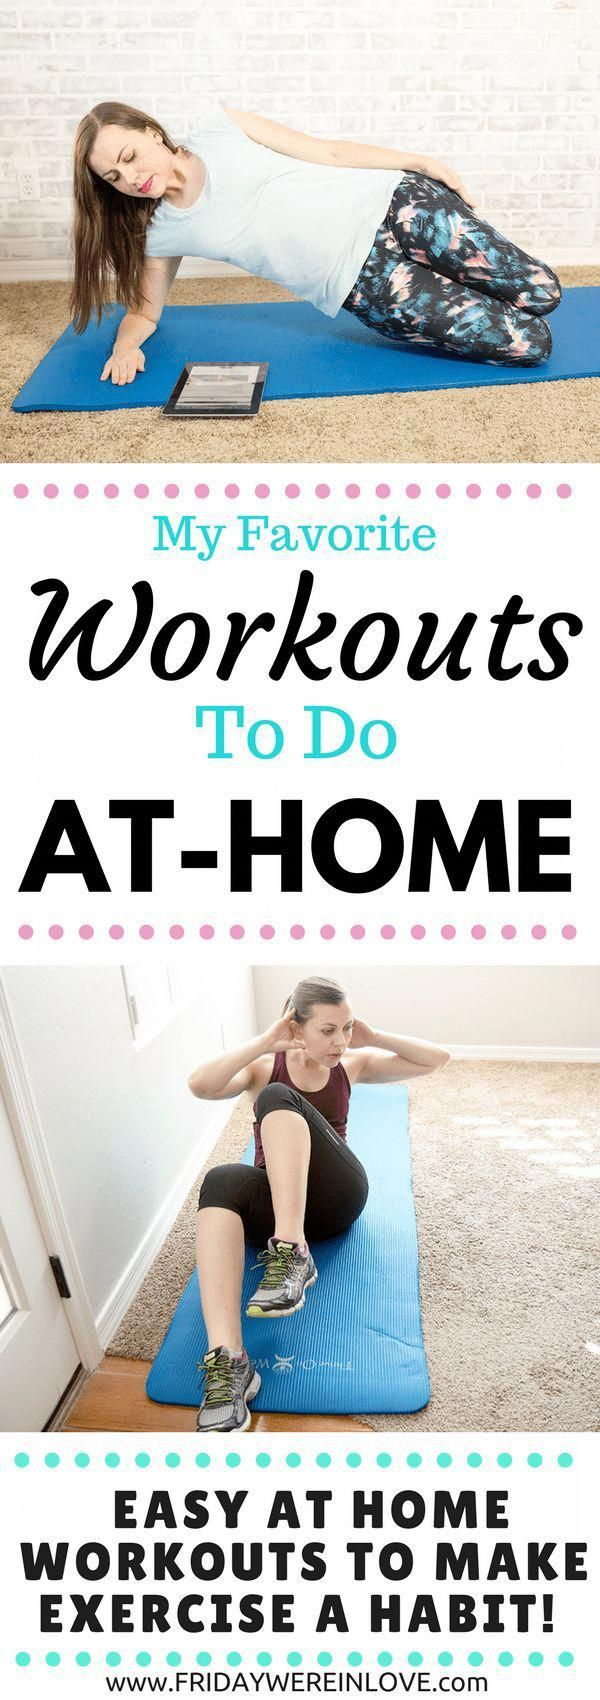 My Favorite Workouts to Do From Home: Easy at home workouts to make exercise a habit! #WorkoutsToDoFromHome #HealthyHabits #EasyWorkouts #fitnessAtHome